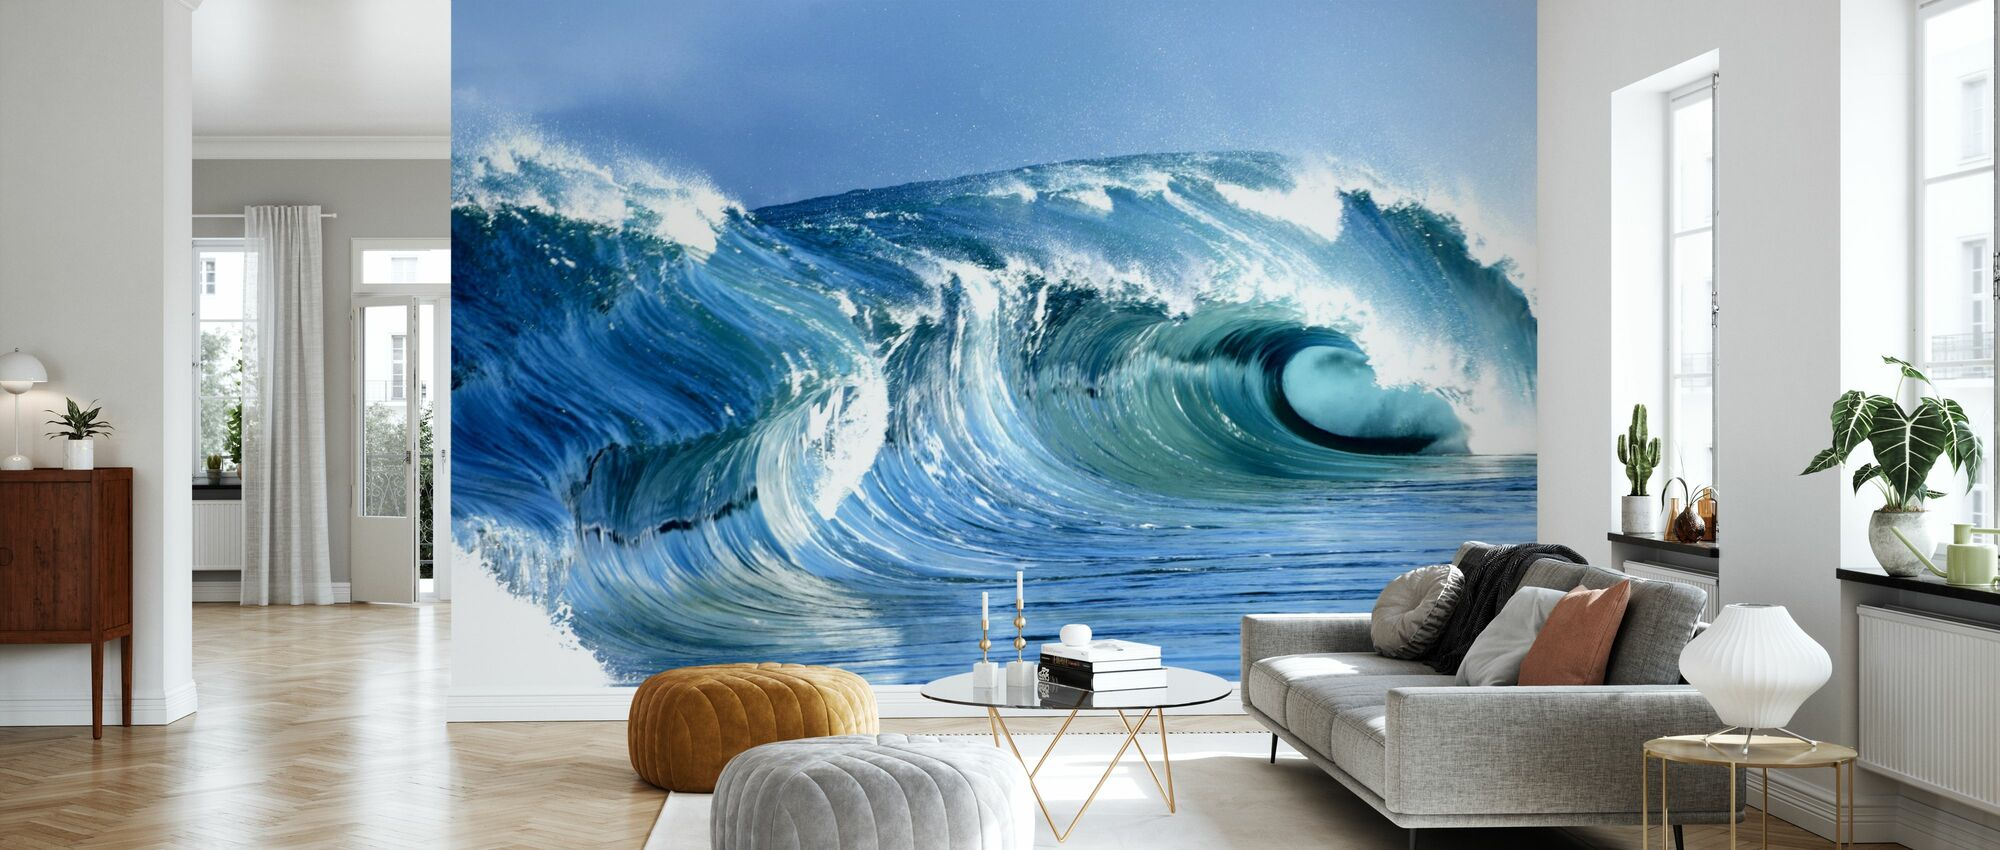 Jarvis Wave - Wallpaper - Living Room